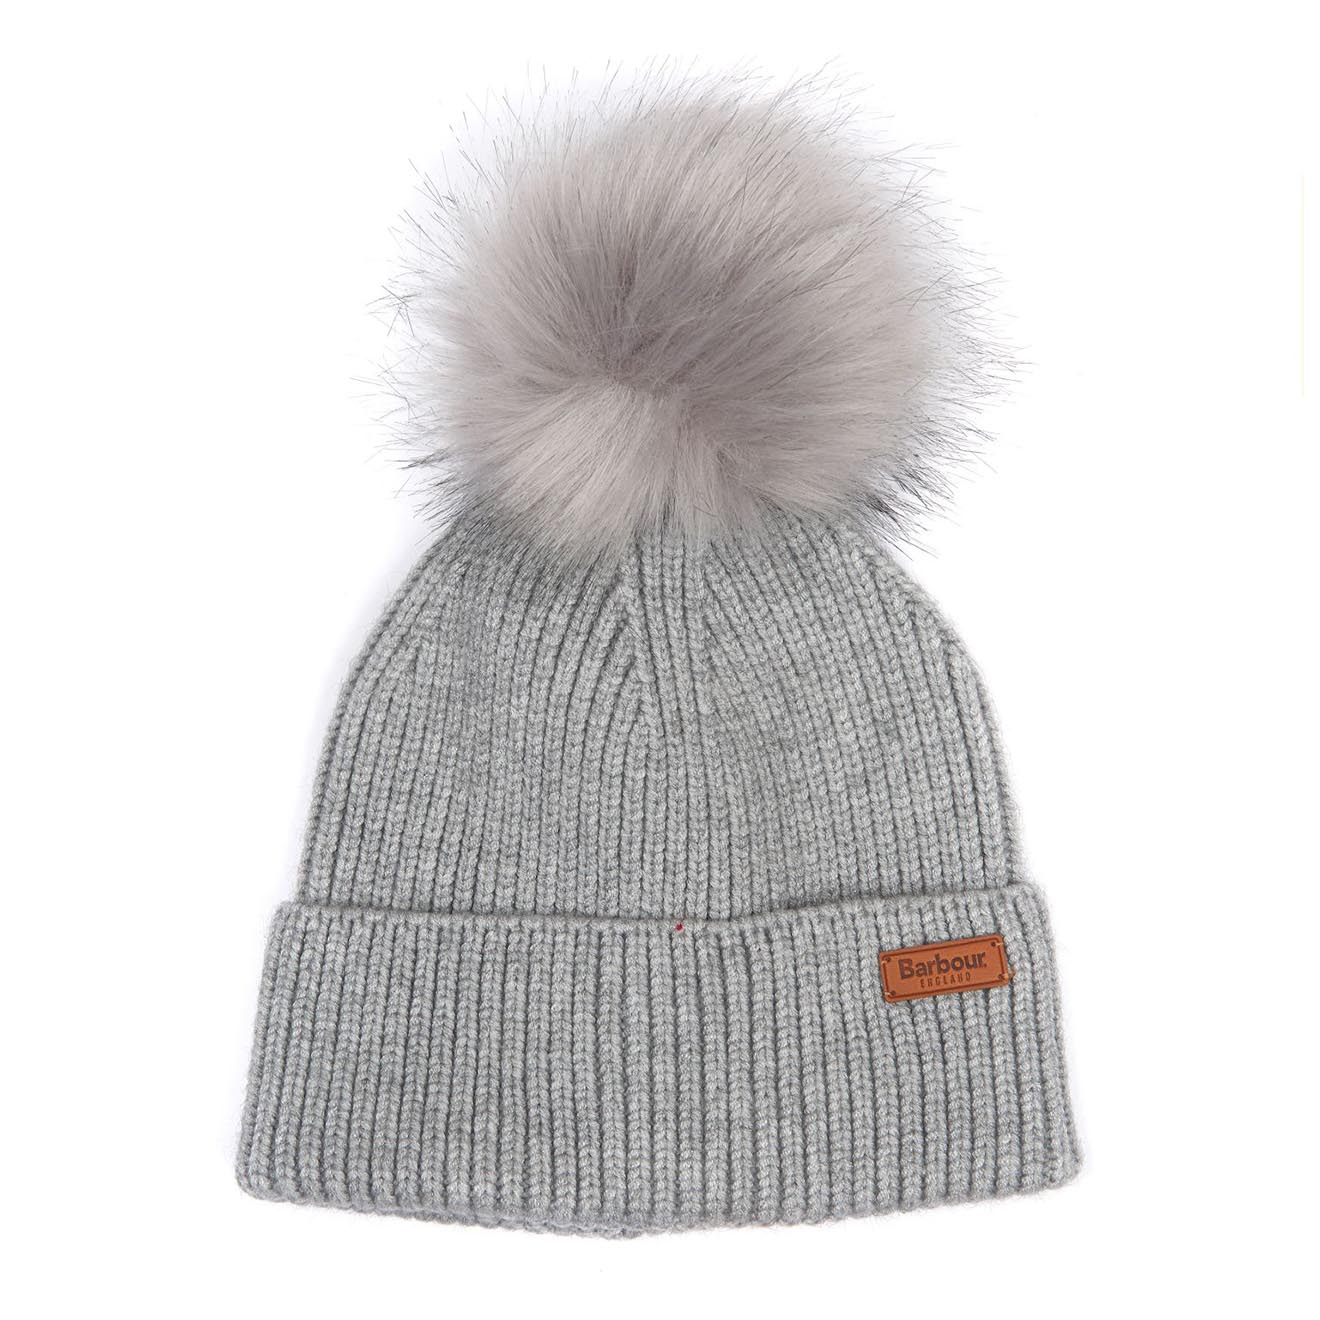 Barbour Womens Dover Pom Beanie Hat Grey - The Sporting Lodge 6087f01fb23